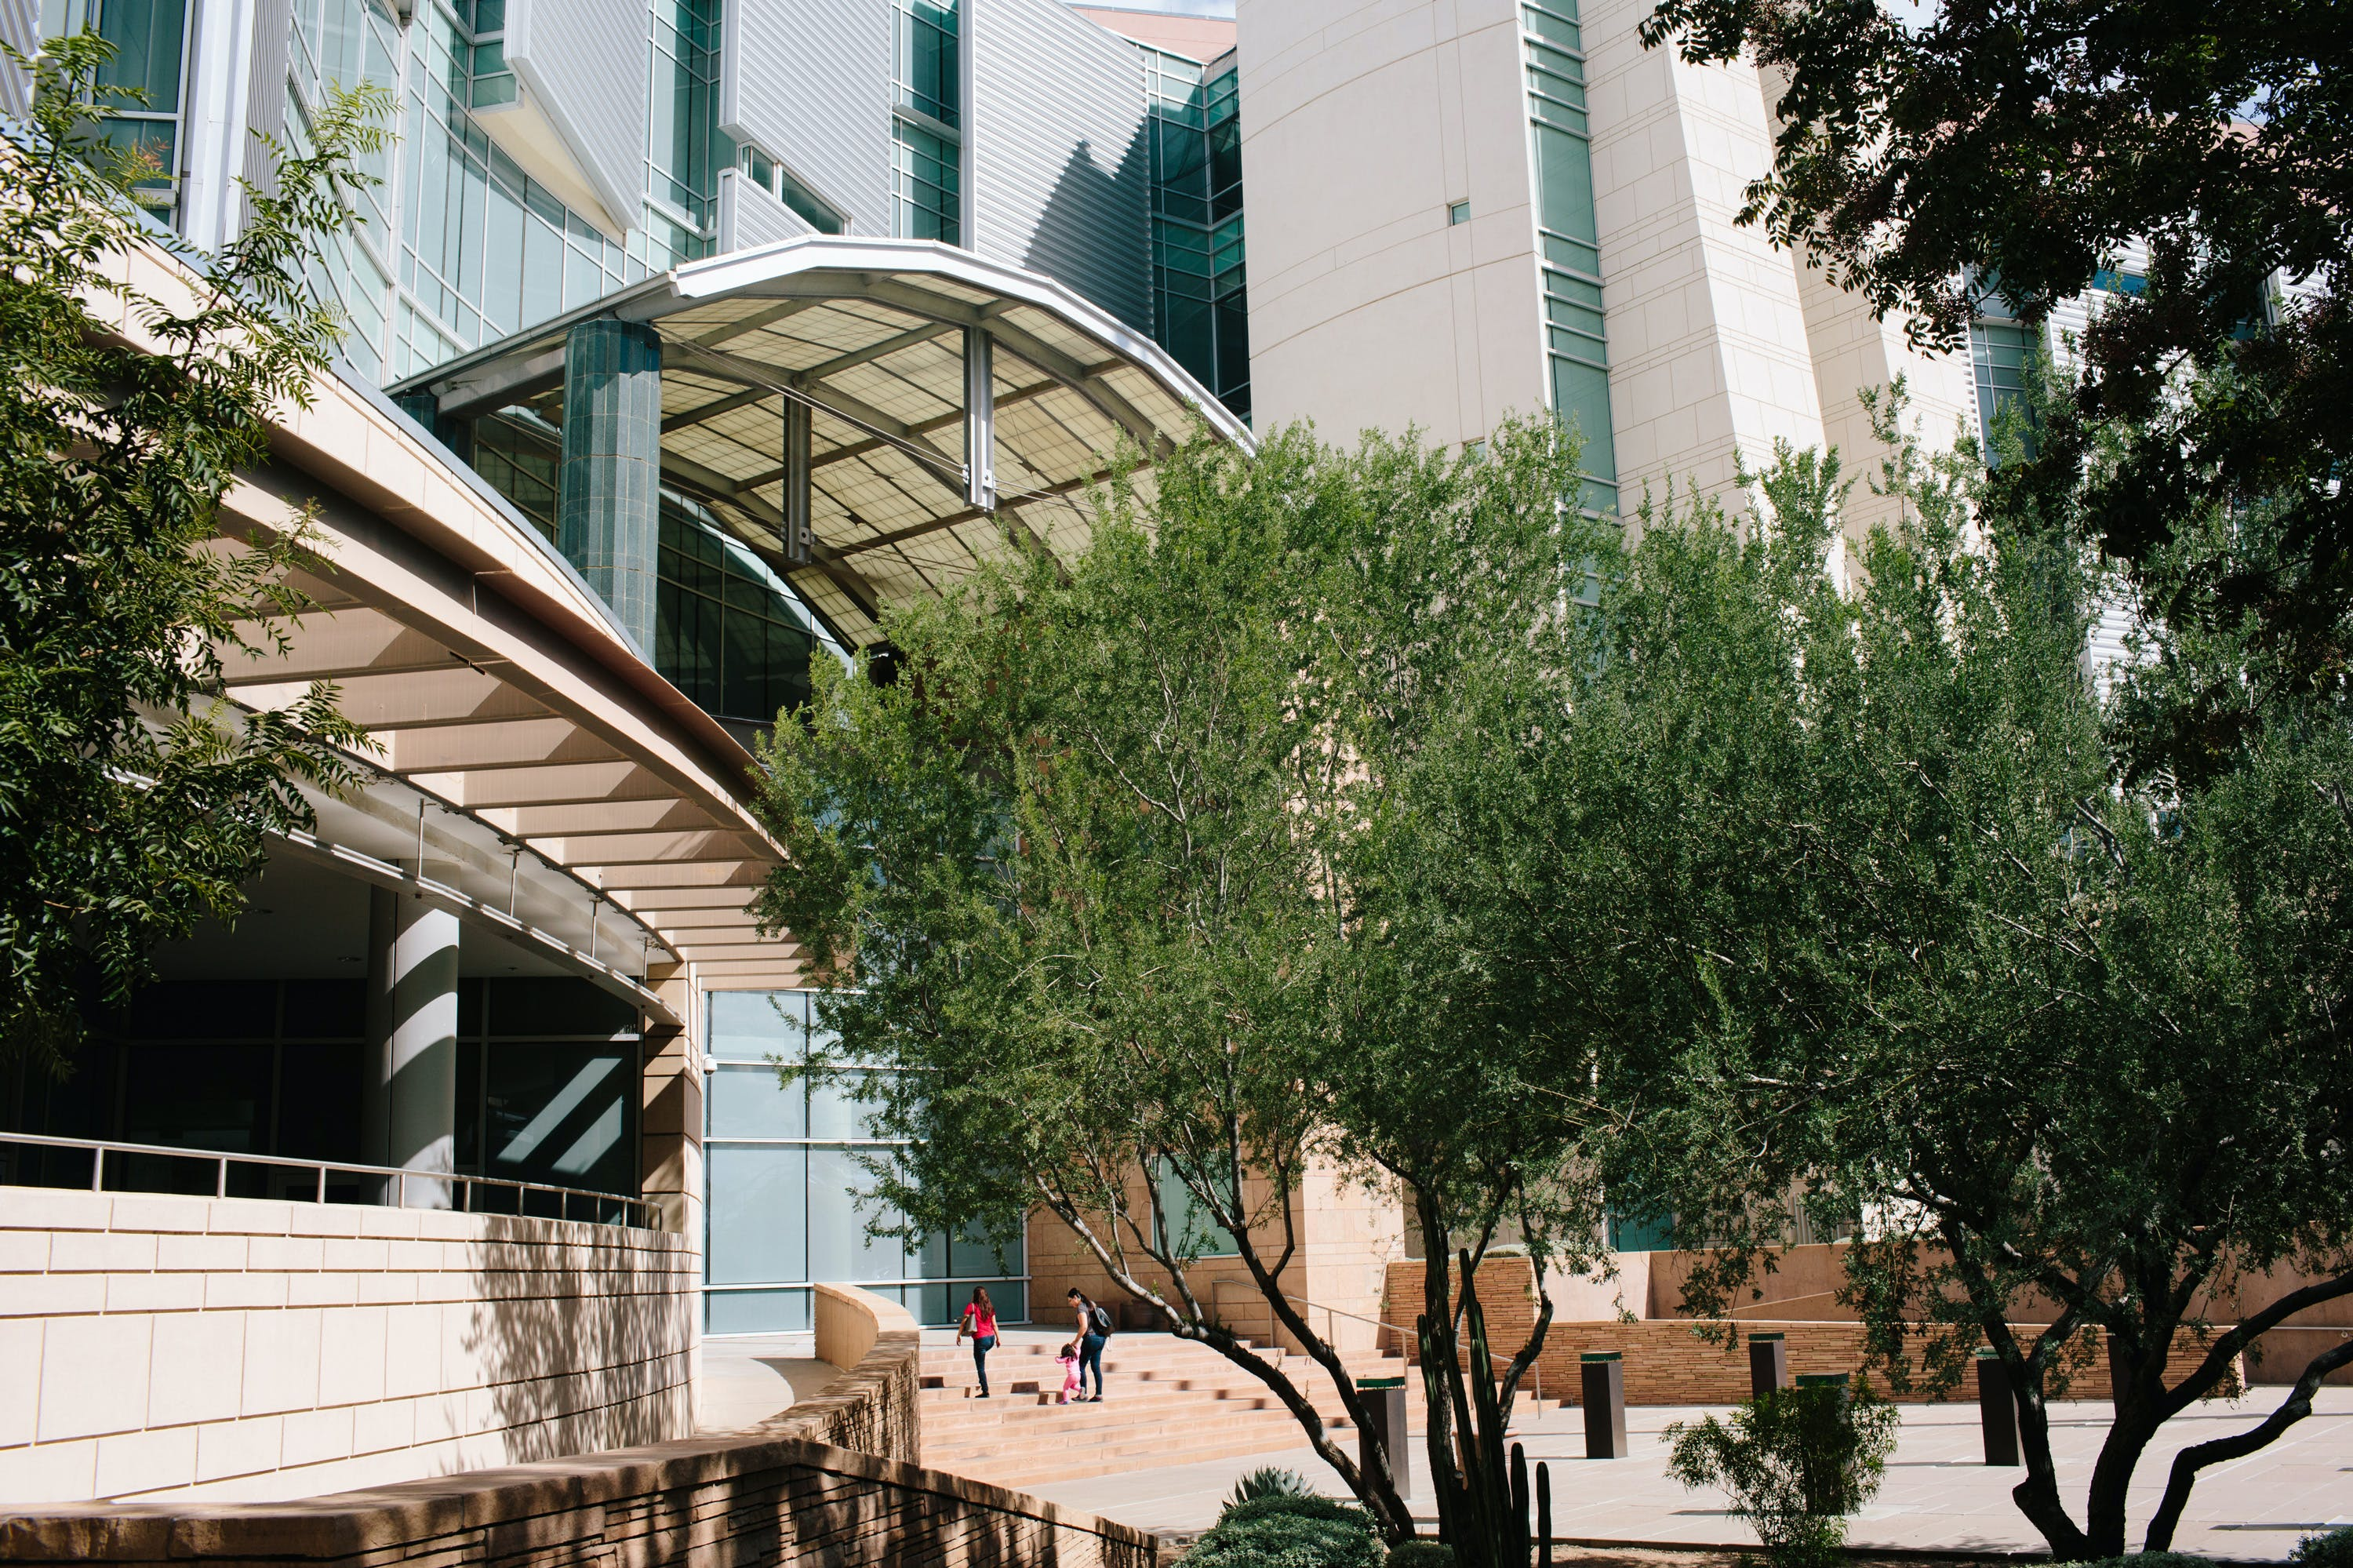 The Evo A. DeConcini United States Courthouse seen on Oct. 22 in Tucson, Ariz. (Caitlin O'Hara for The Intercept)